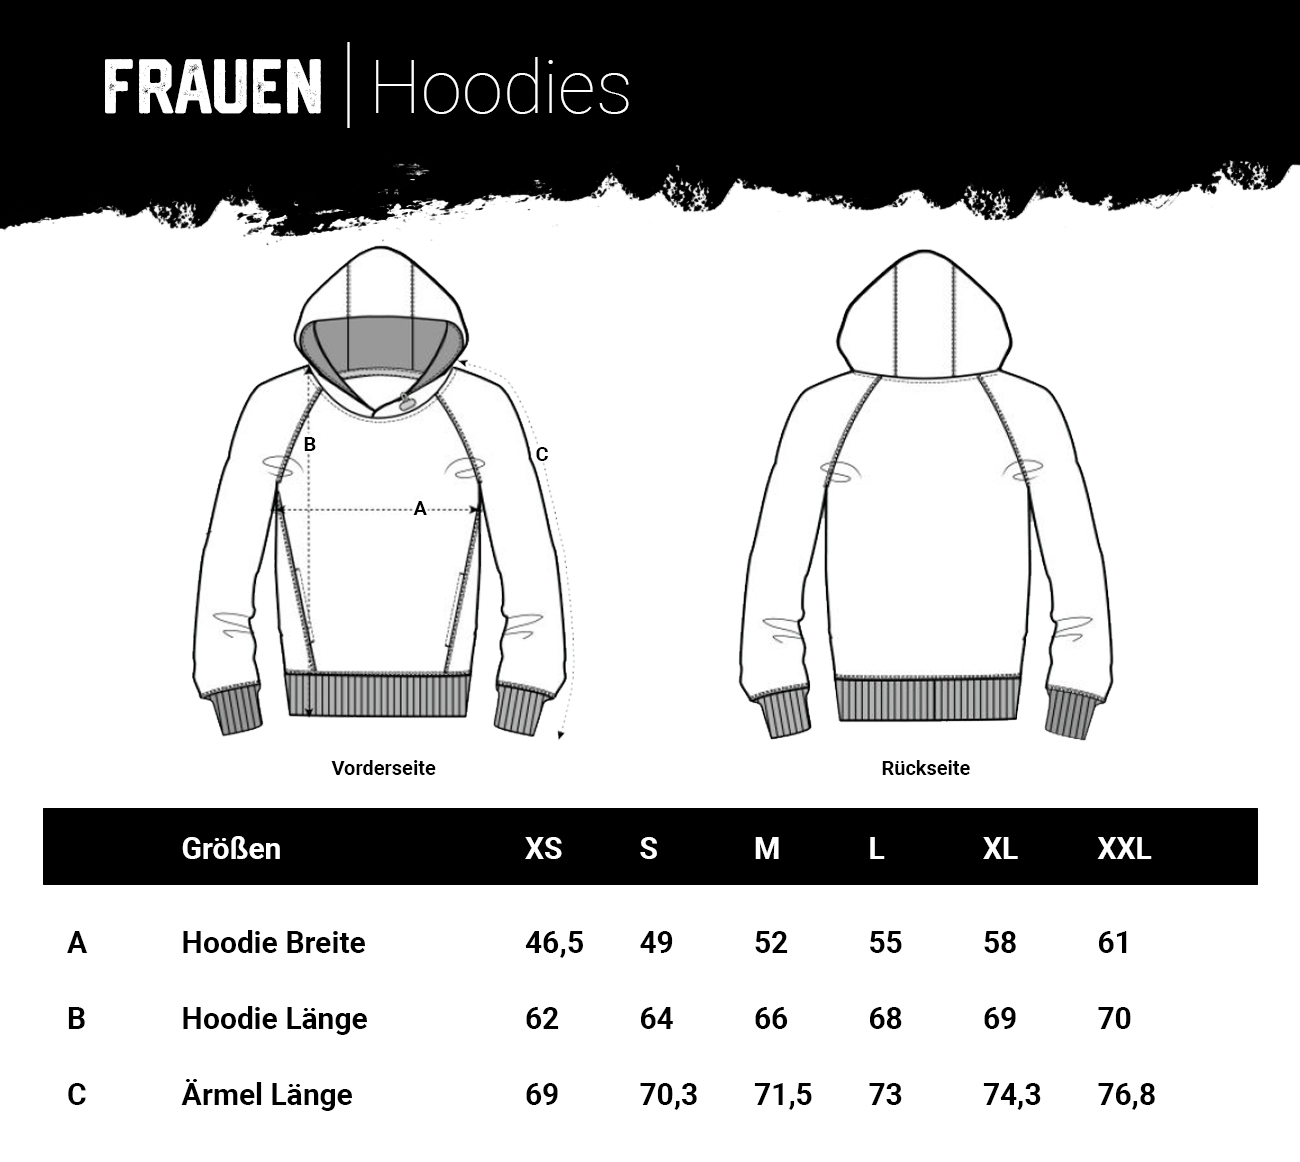 Frauen_Hoodies.jpg